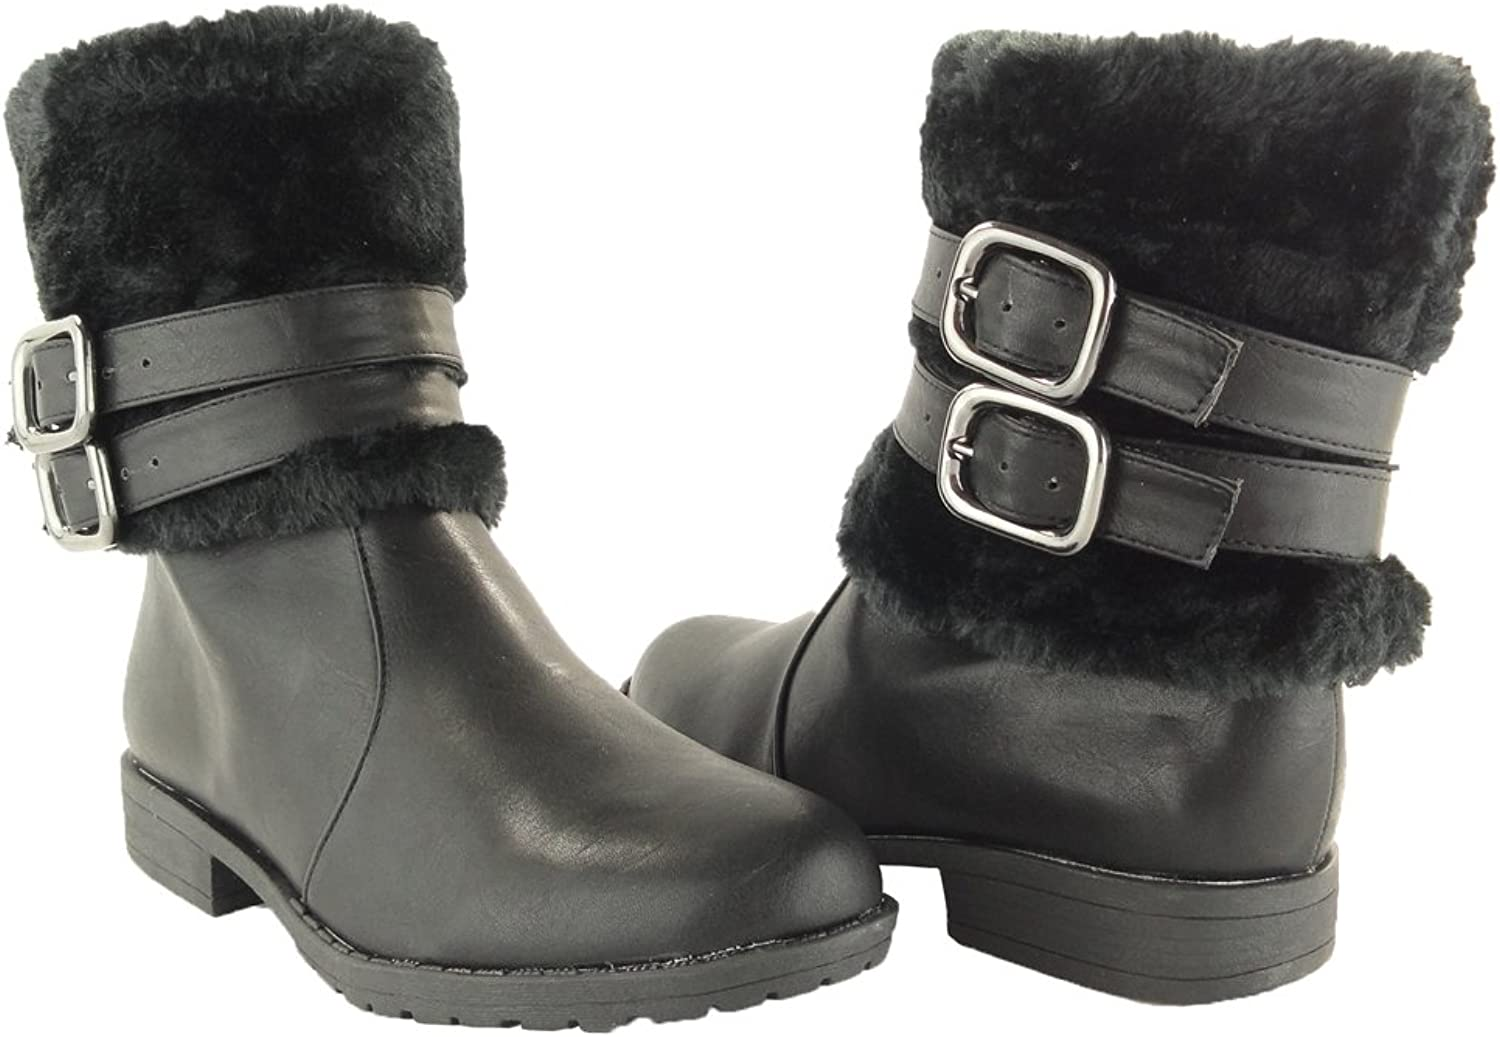 KSC Womens Ankle Boots Leather Faux Fur Cuff Ankle Wrap Buckles Black